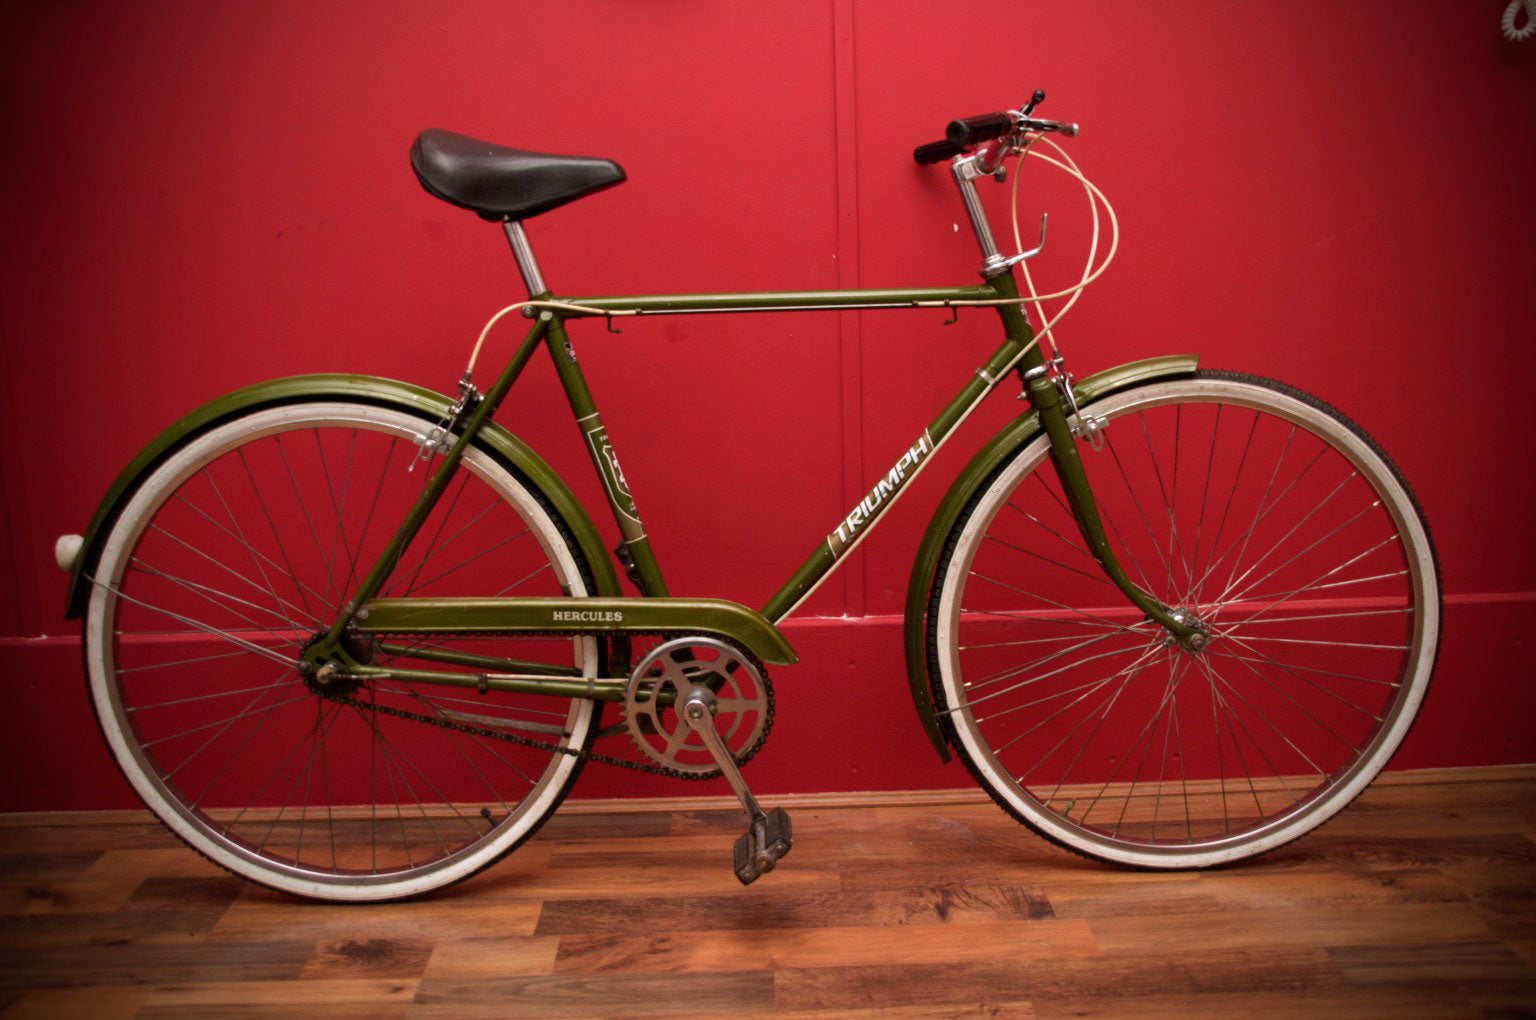 1. Bicycle Frame / Serial No Dating The Online Bicycle Museum